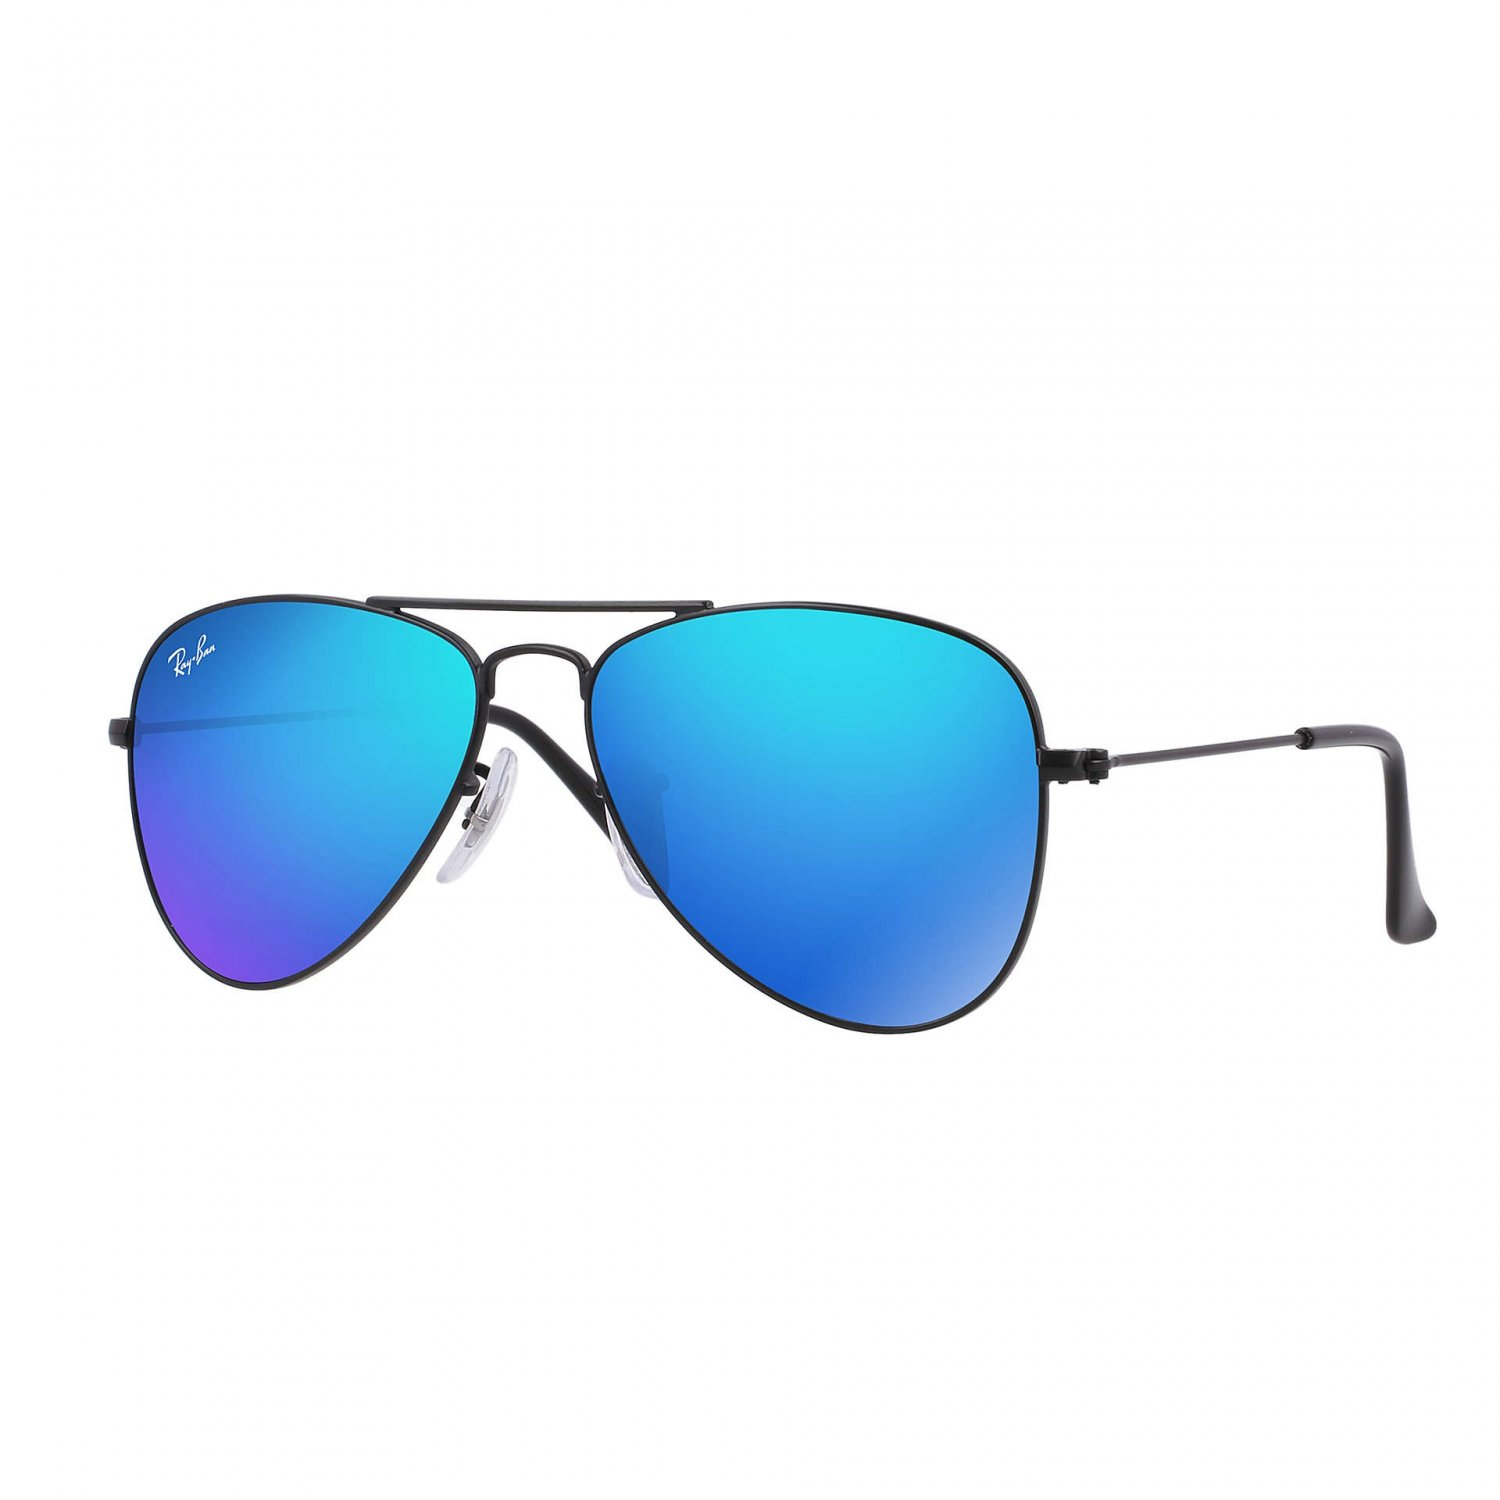 Ray-Ban Jr Aviator Sunglasses - Matte Black/Mirror Blue